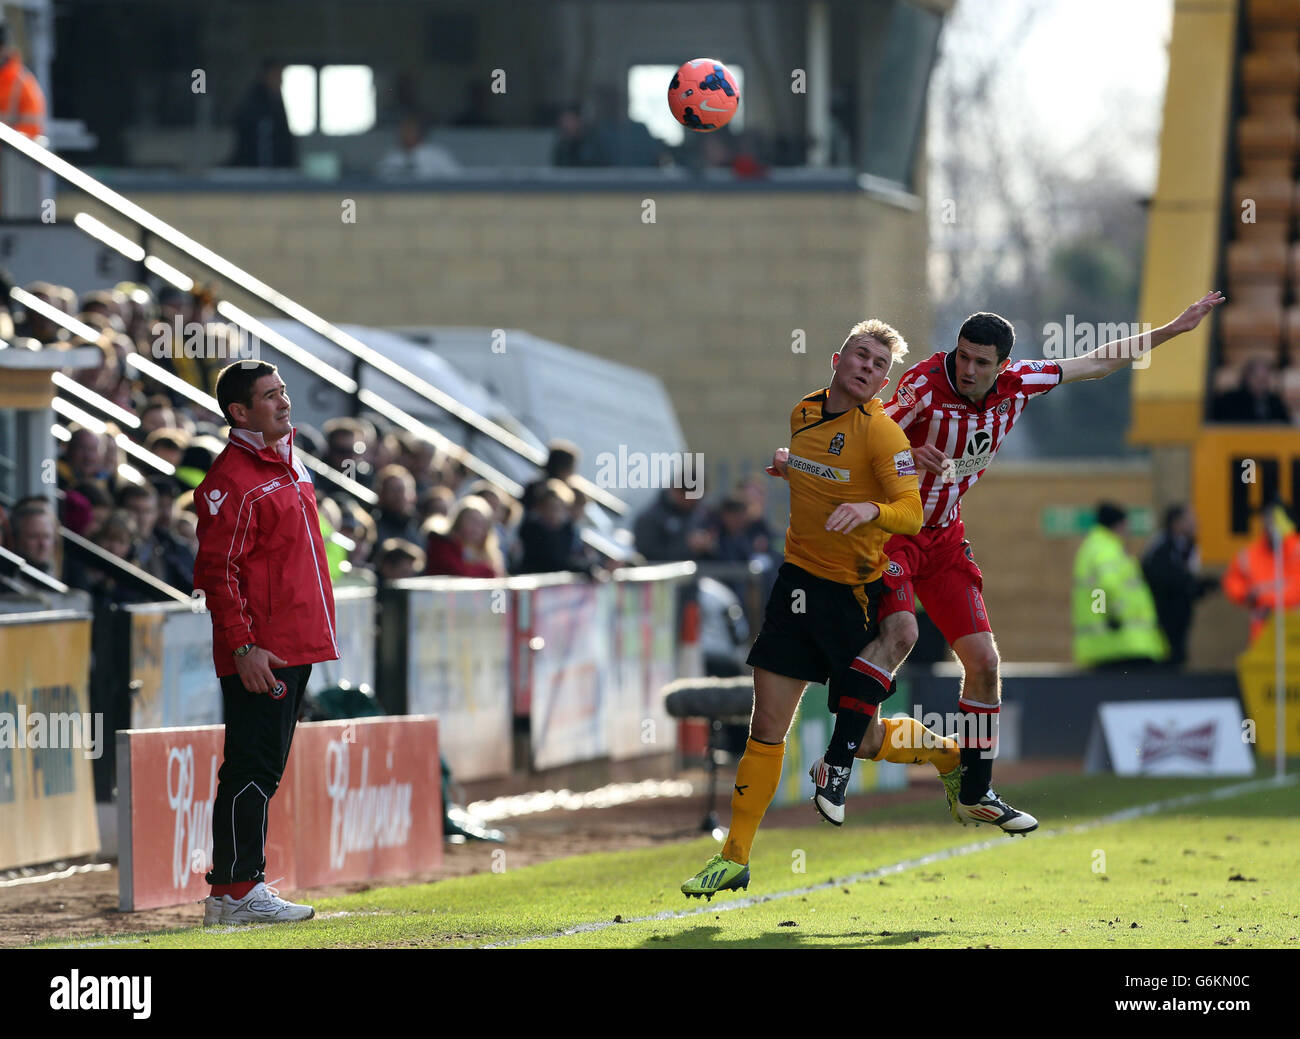 Soccer - FA Cup - Second Round - Cambridge United v Sheffield United - R Costings Abbey Stadium - Stock Image